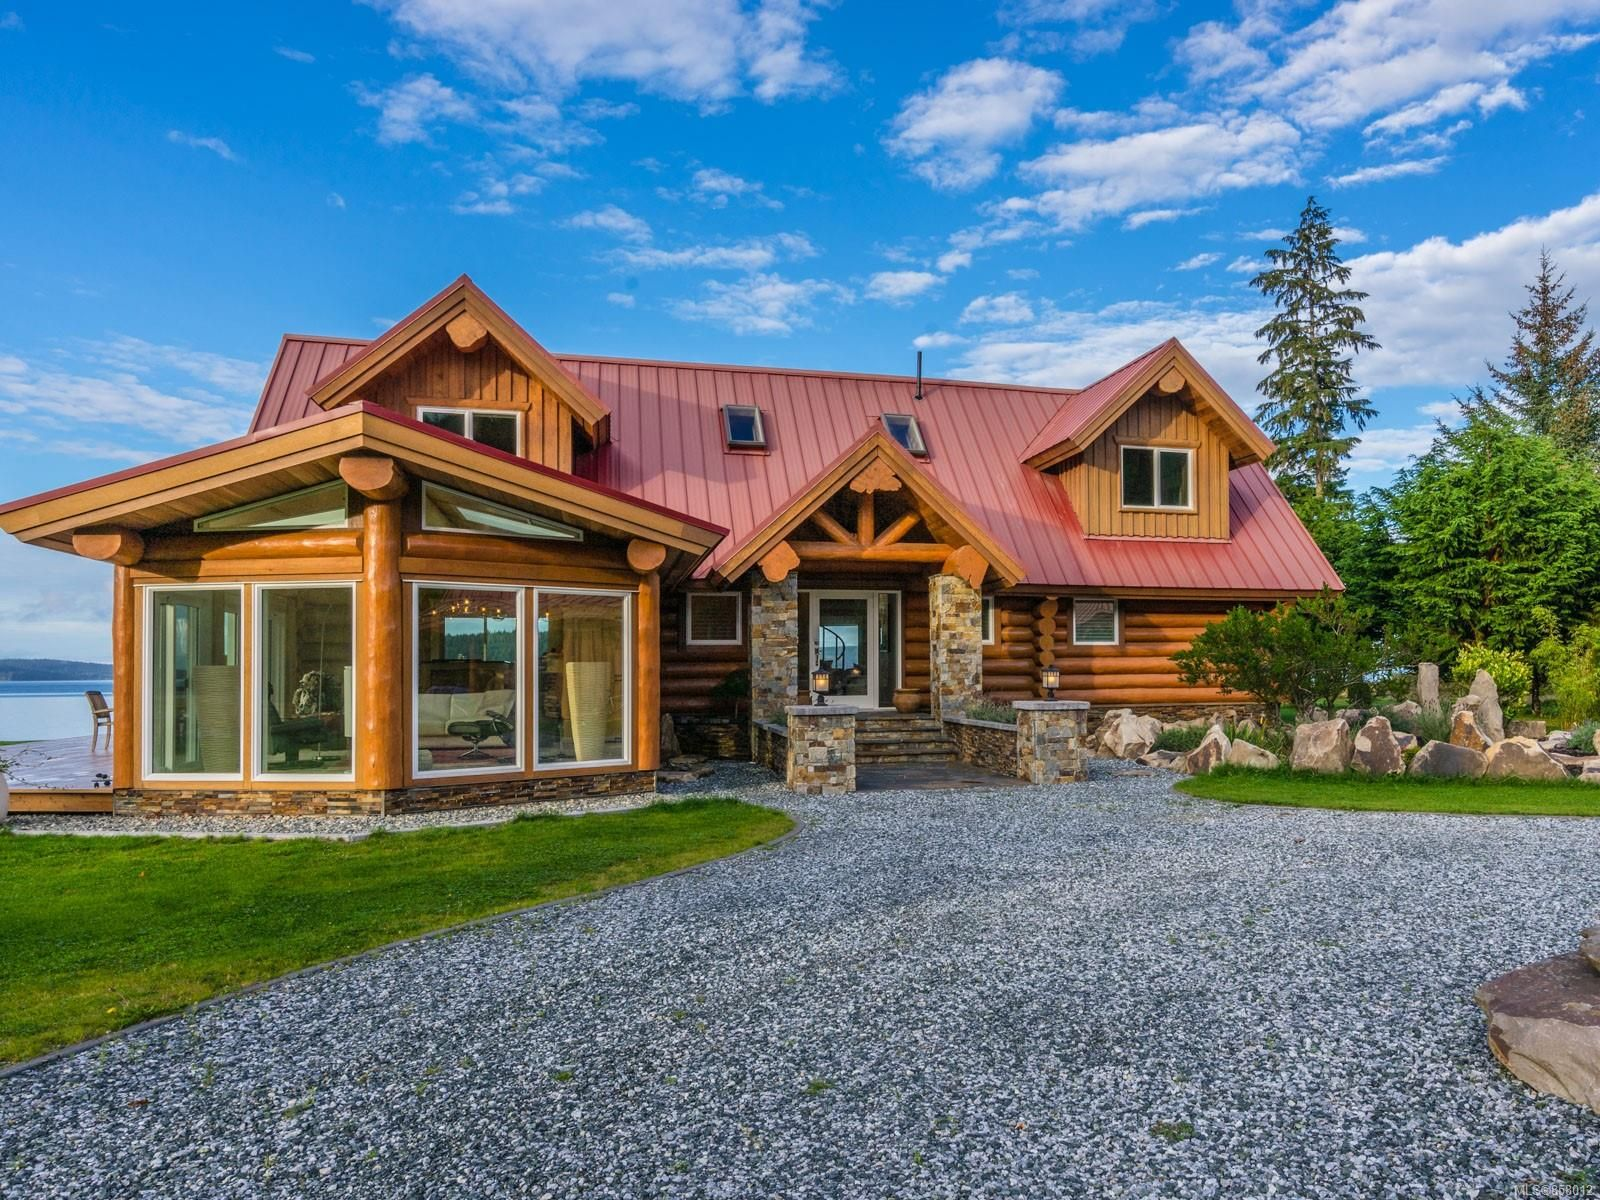 Photo 84: Photos: 6030 MINE Rd in : NI Port McNeill House for sale (North Island)  : MLS®# 858012